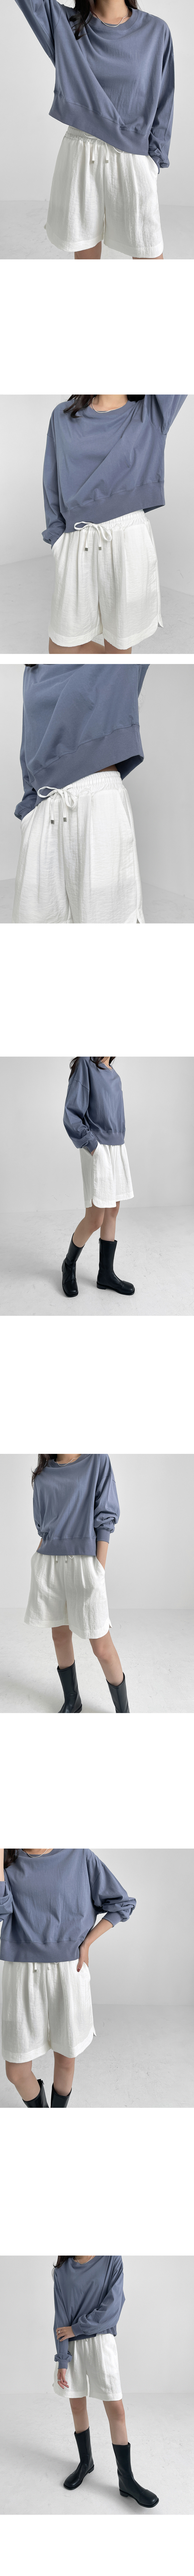 Recy Cooling Banding Shorts